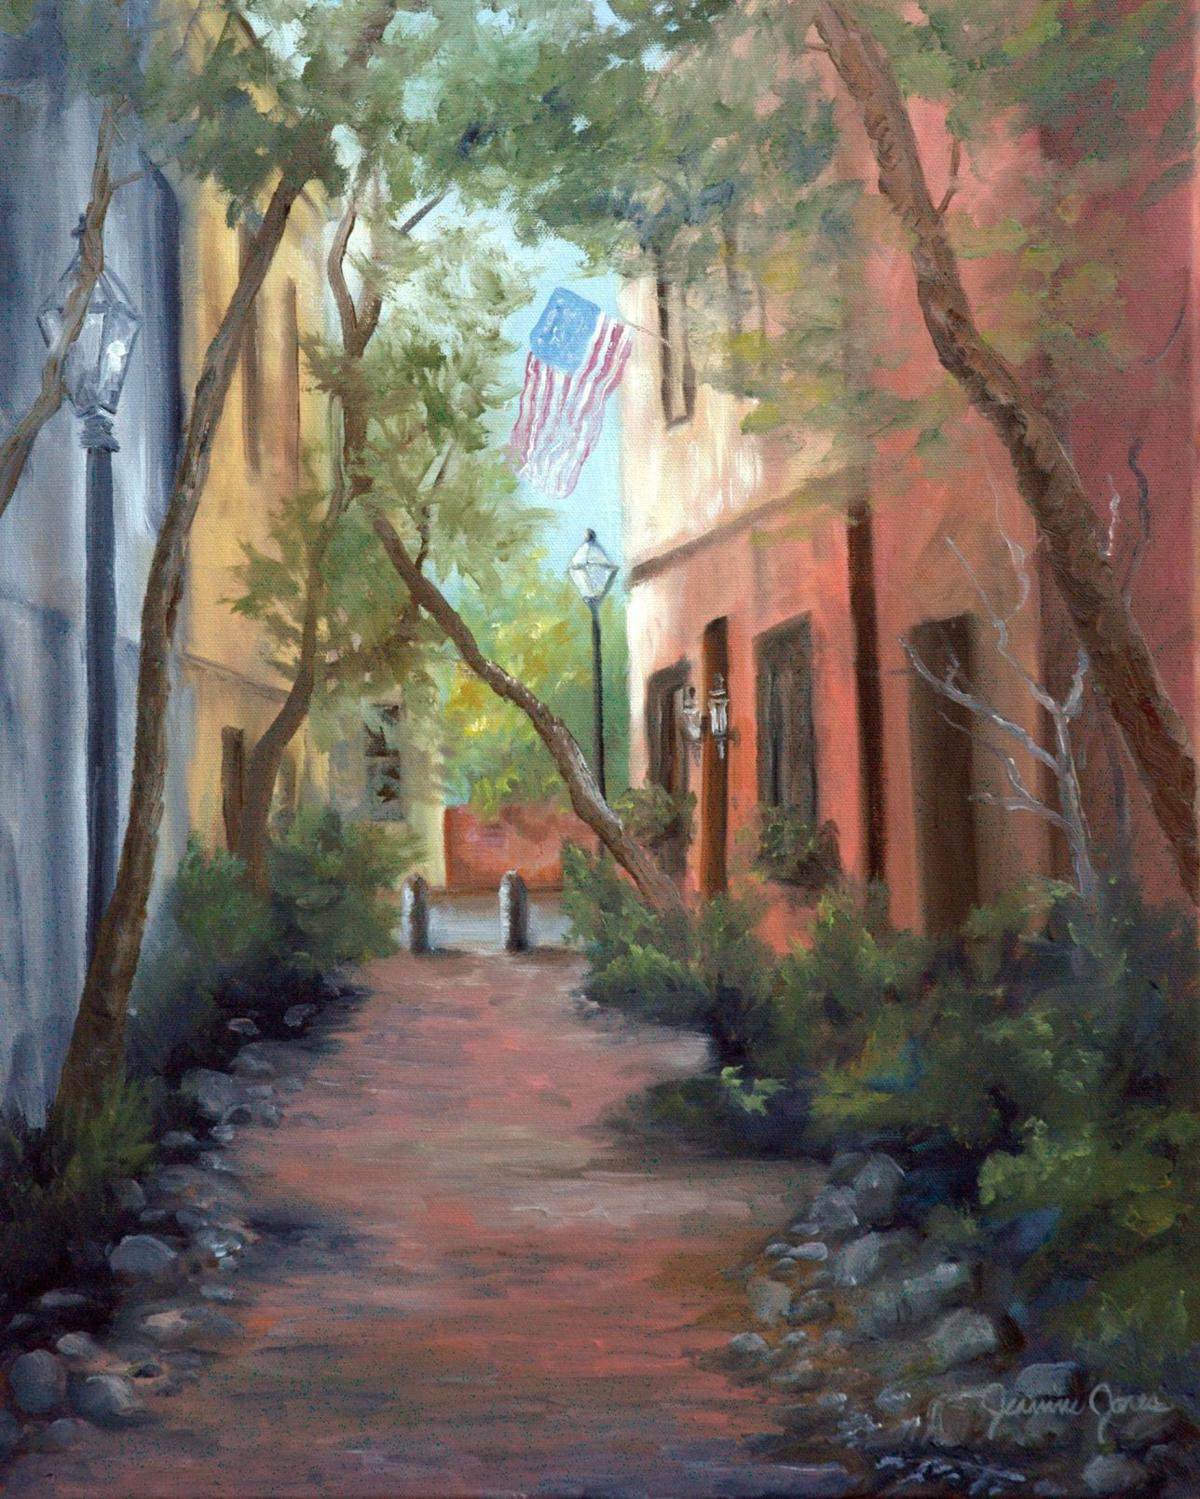 Artist captures city's beauty with a patriotic touch